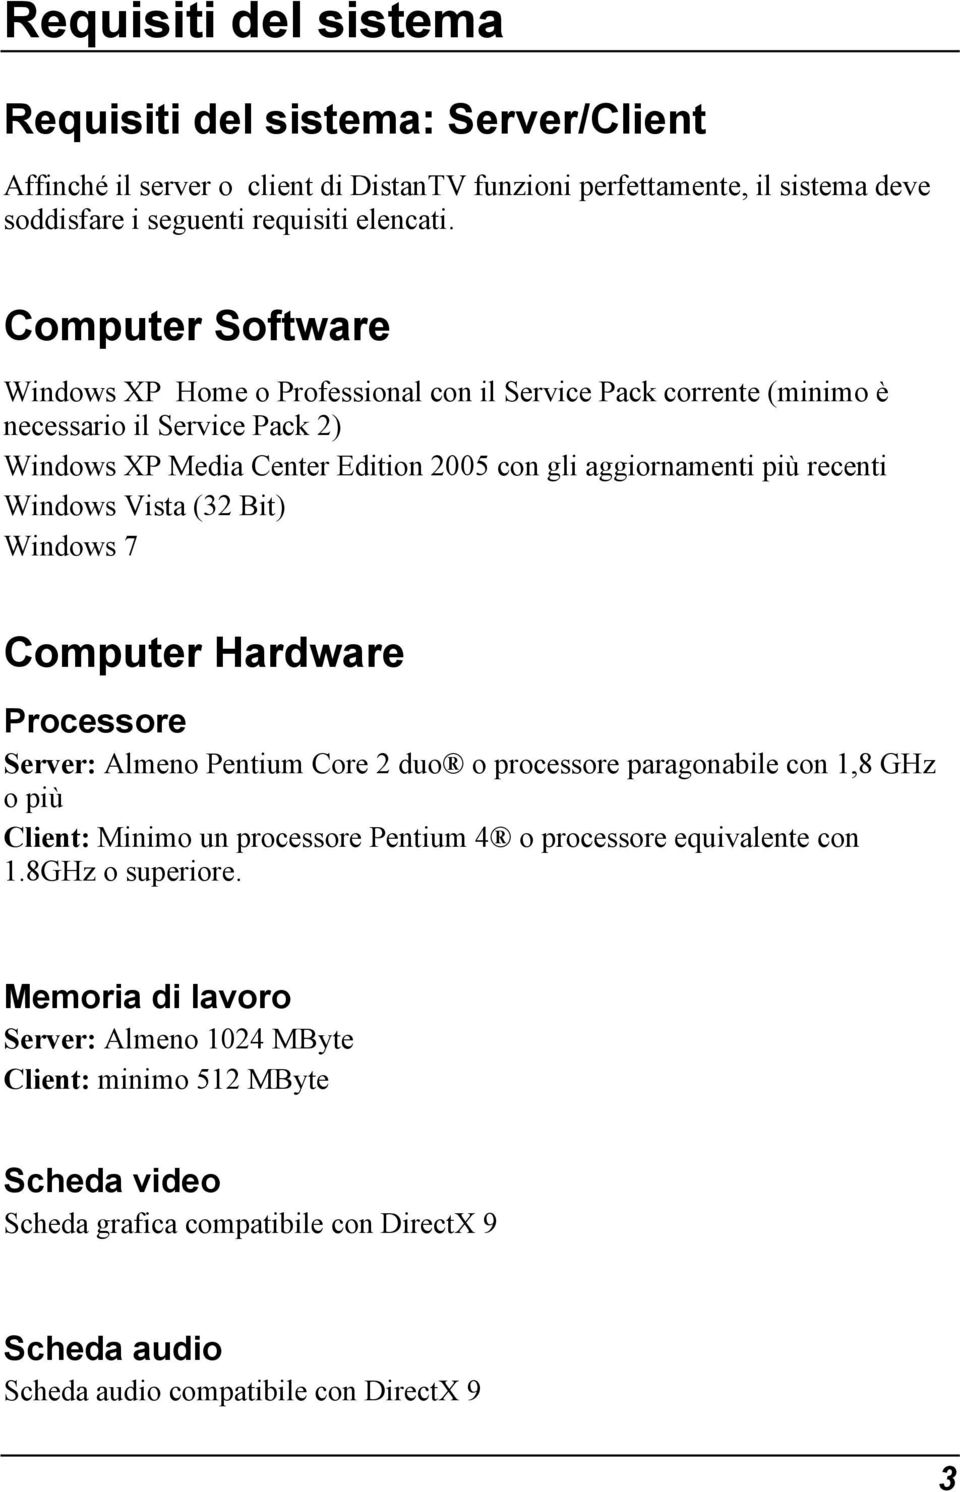 Windows Vista (32 Bit) Windows 7 Computer Hardware Processore Server: Almeno Pentium Core 2 duo o processore paragonabile con 1,8 GHz o più Client: Minimo un processore Pentium 4 o processore